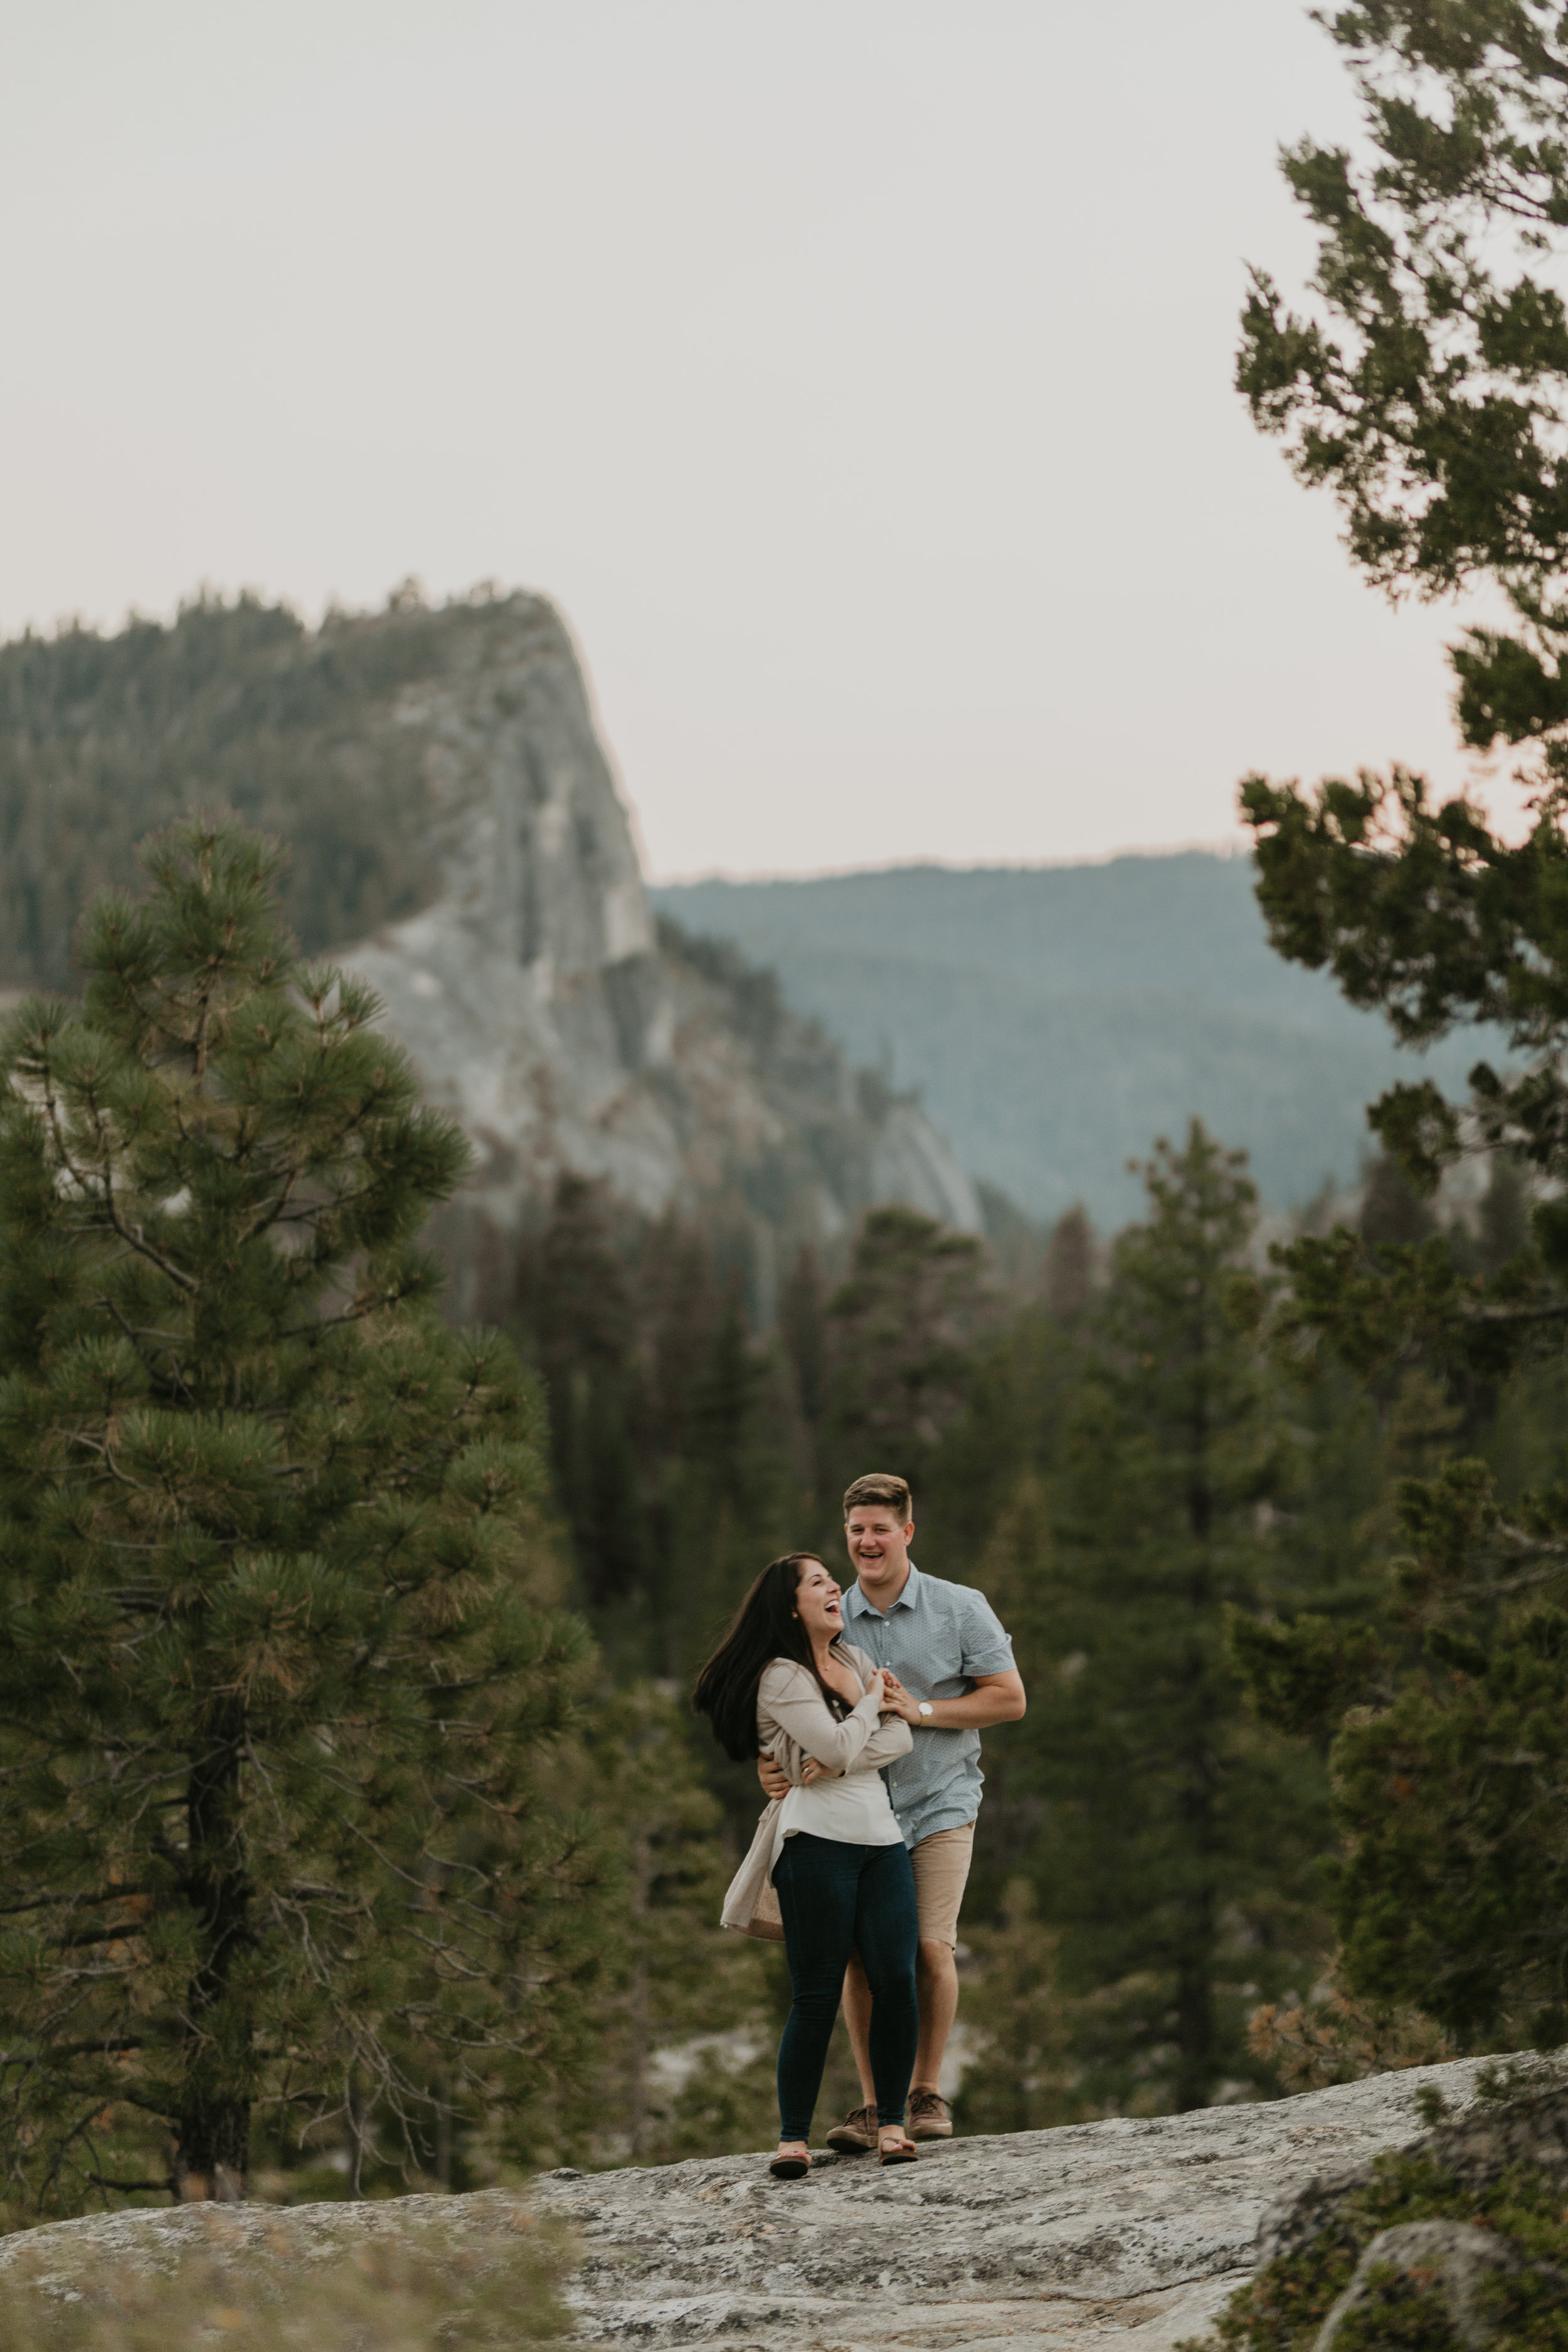 nicole-daacke-photography-adventurous-elopement-traveling-destination-wedding-photographer-national-park-engagement-sessions-6277.jpg